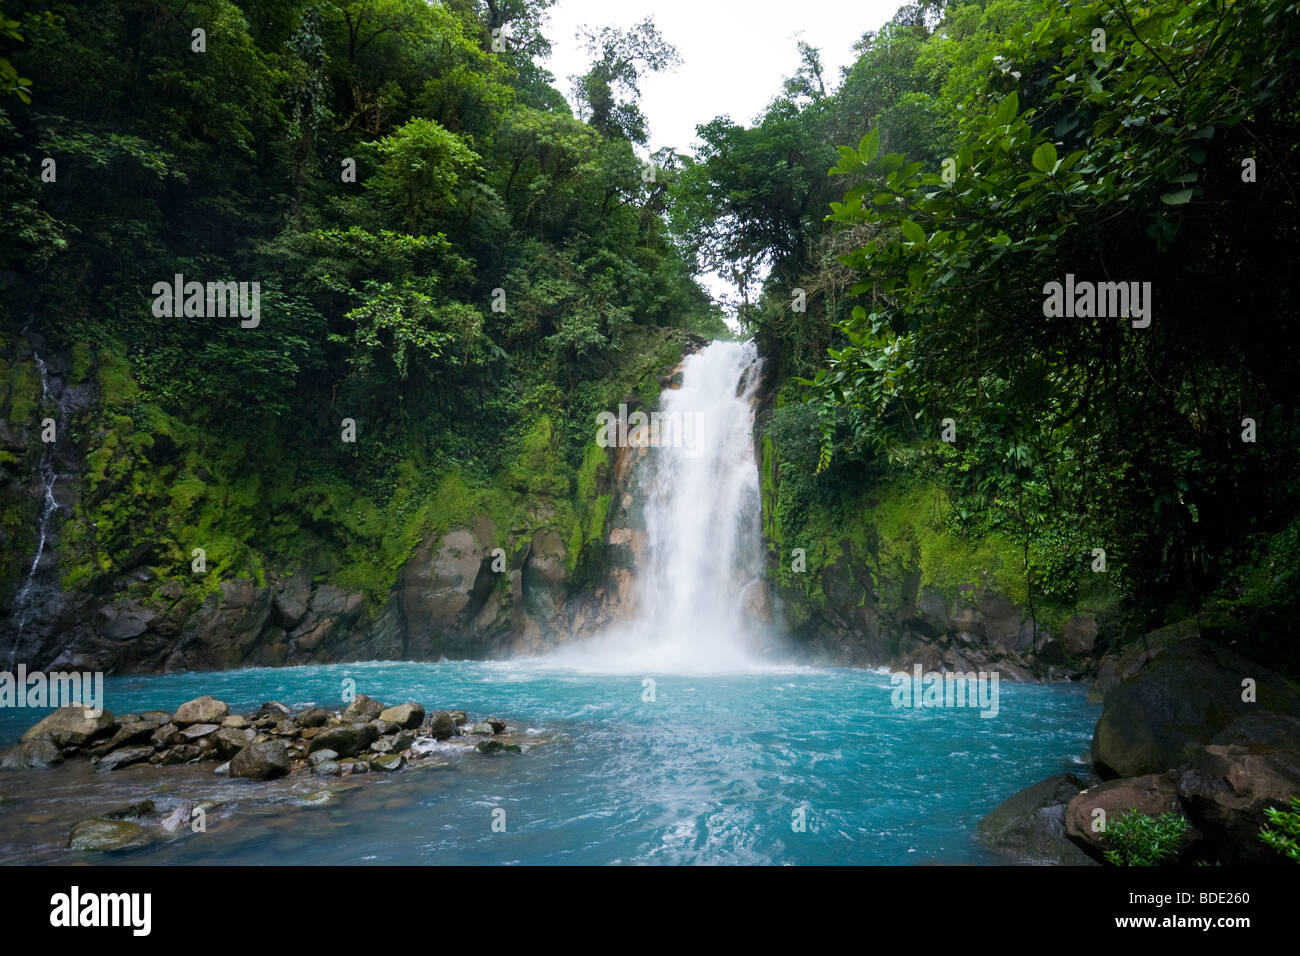 Rain forest waterfall along the vibrant blue Rio Celeste river in Tenorio Volcano National Park, Costa Rica. - Stock Image